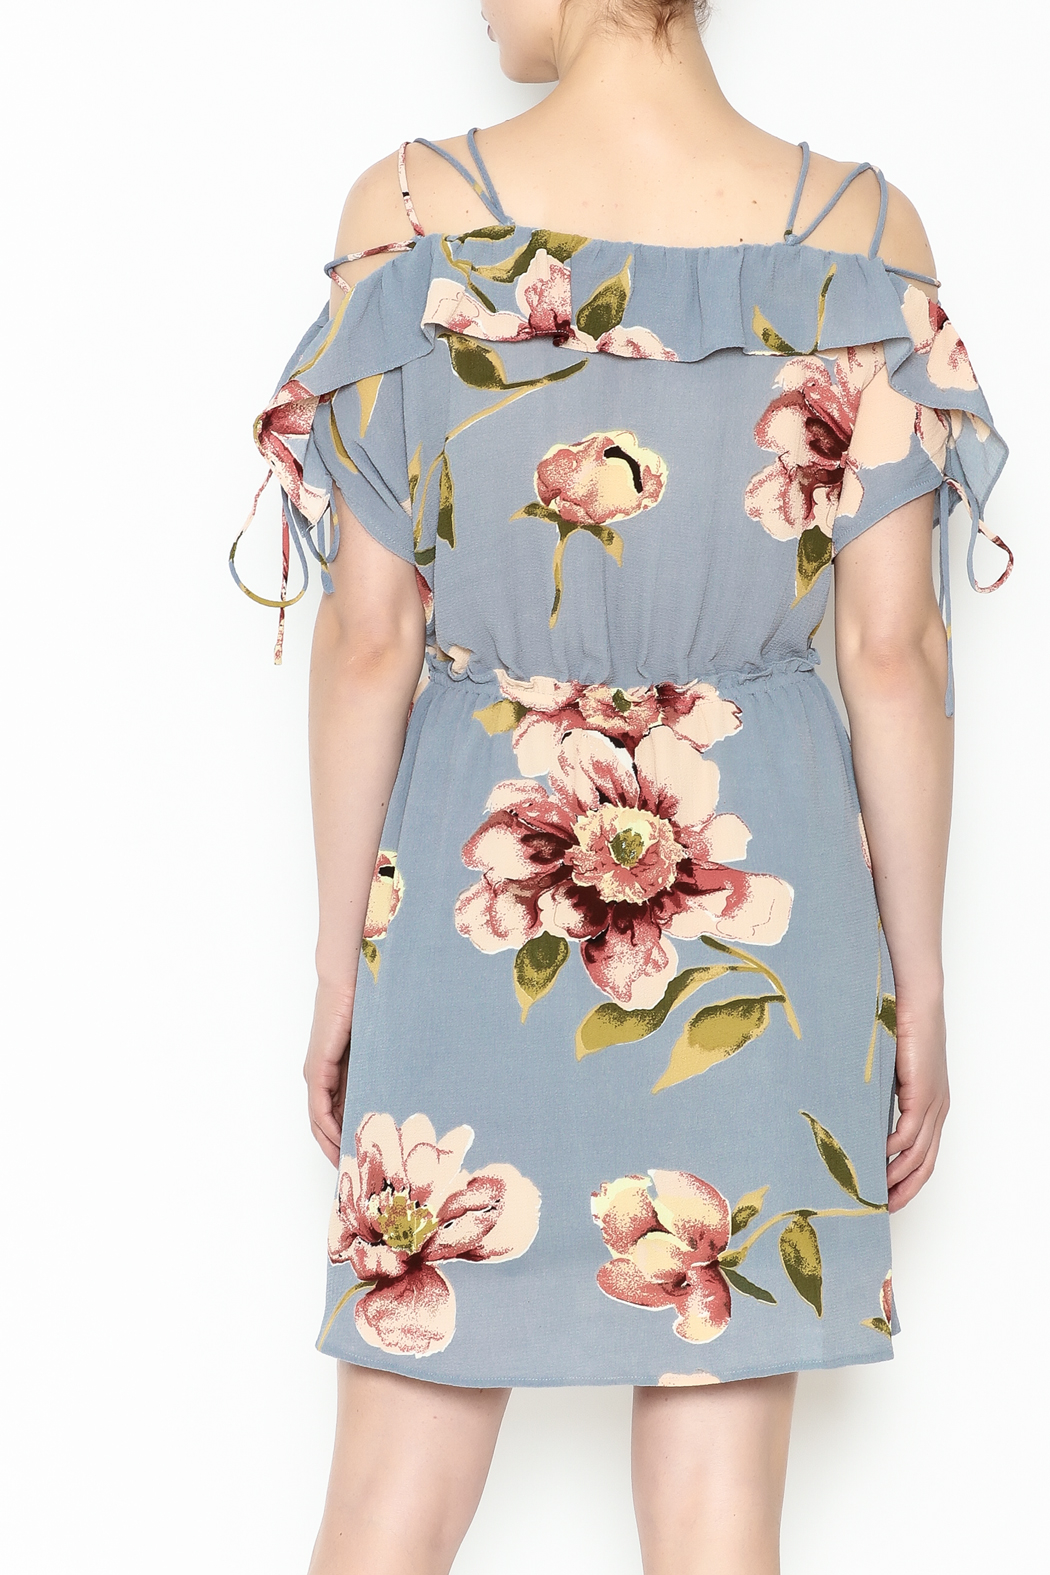 y&i clothing boutique Courtney Floral Dress - Back Cropped Image